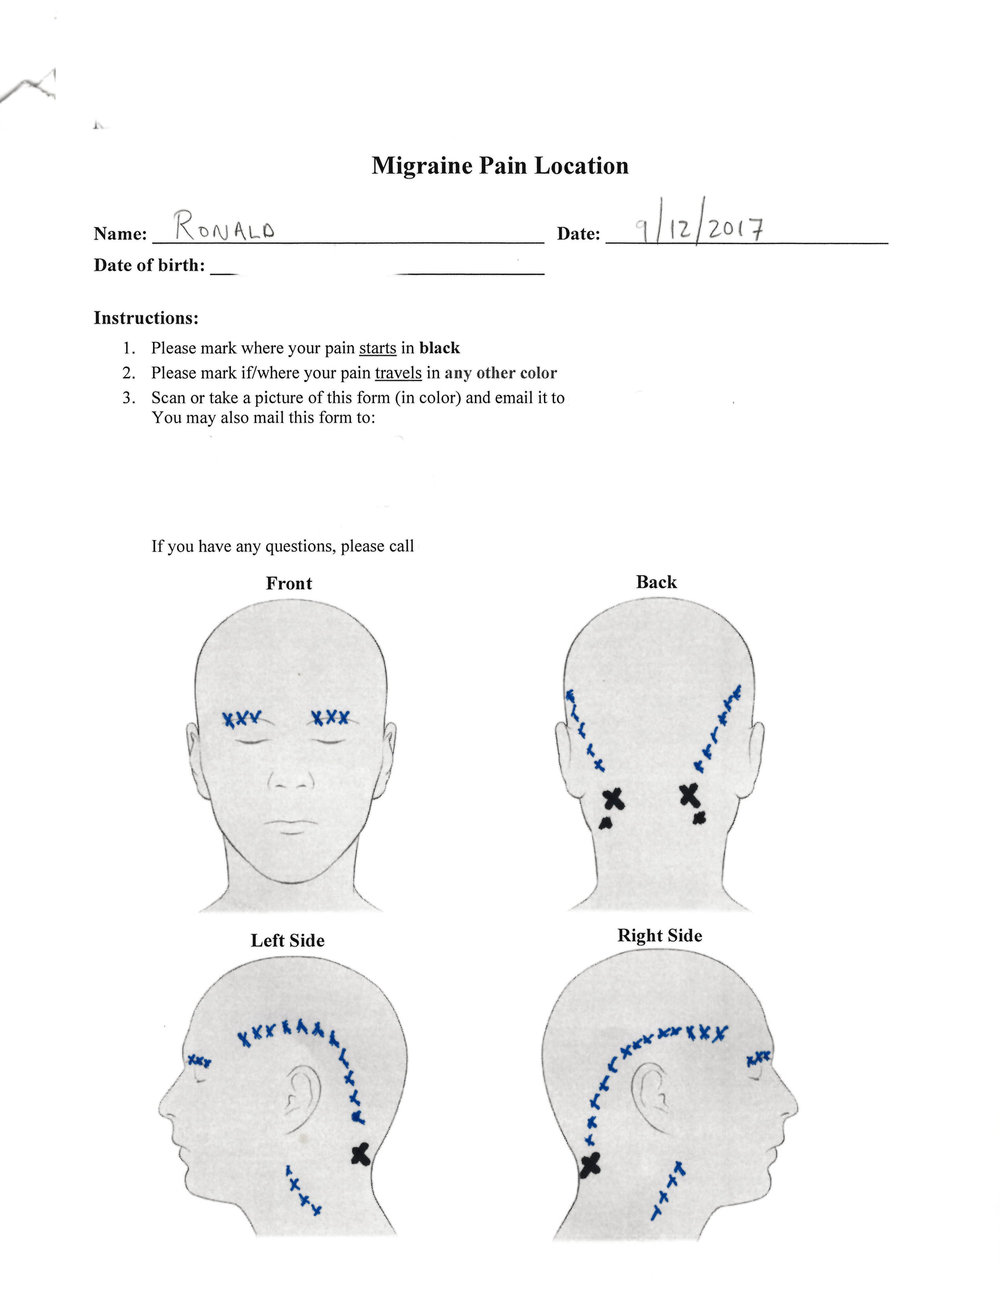 """I marked the """"spot"""" with a black X on this pre-screening form that the migraine surgeon had me fill out before agreeing to see me."""